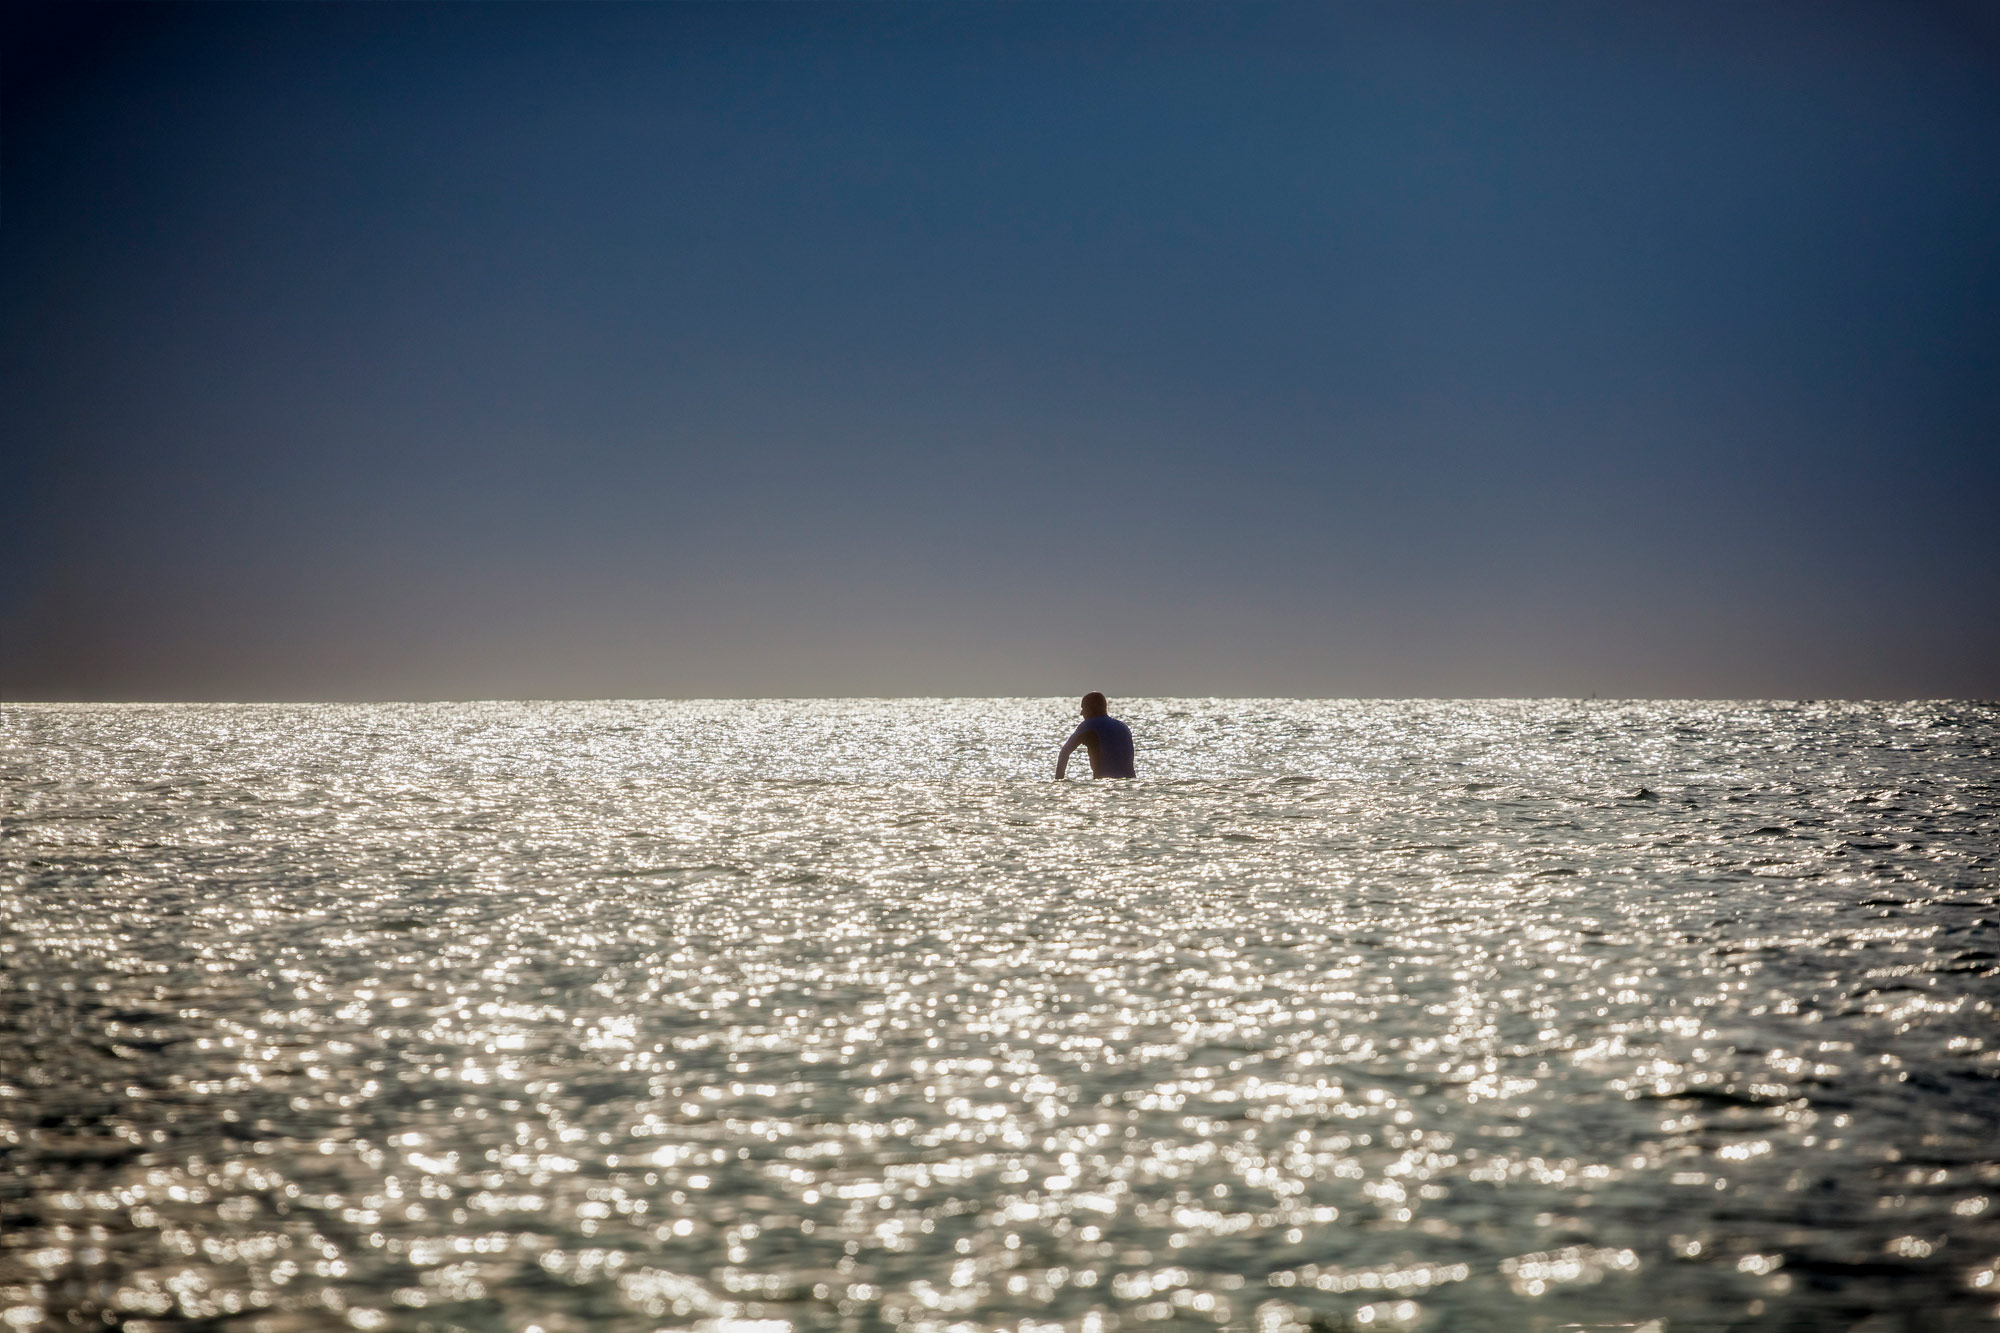 Texas surfer sits alone on his board in the water